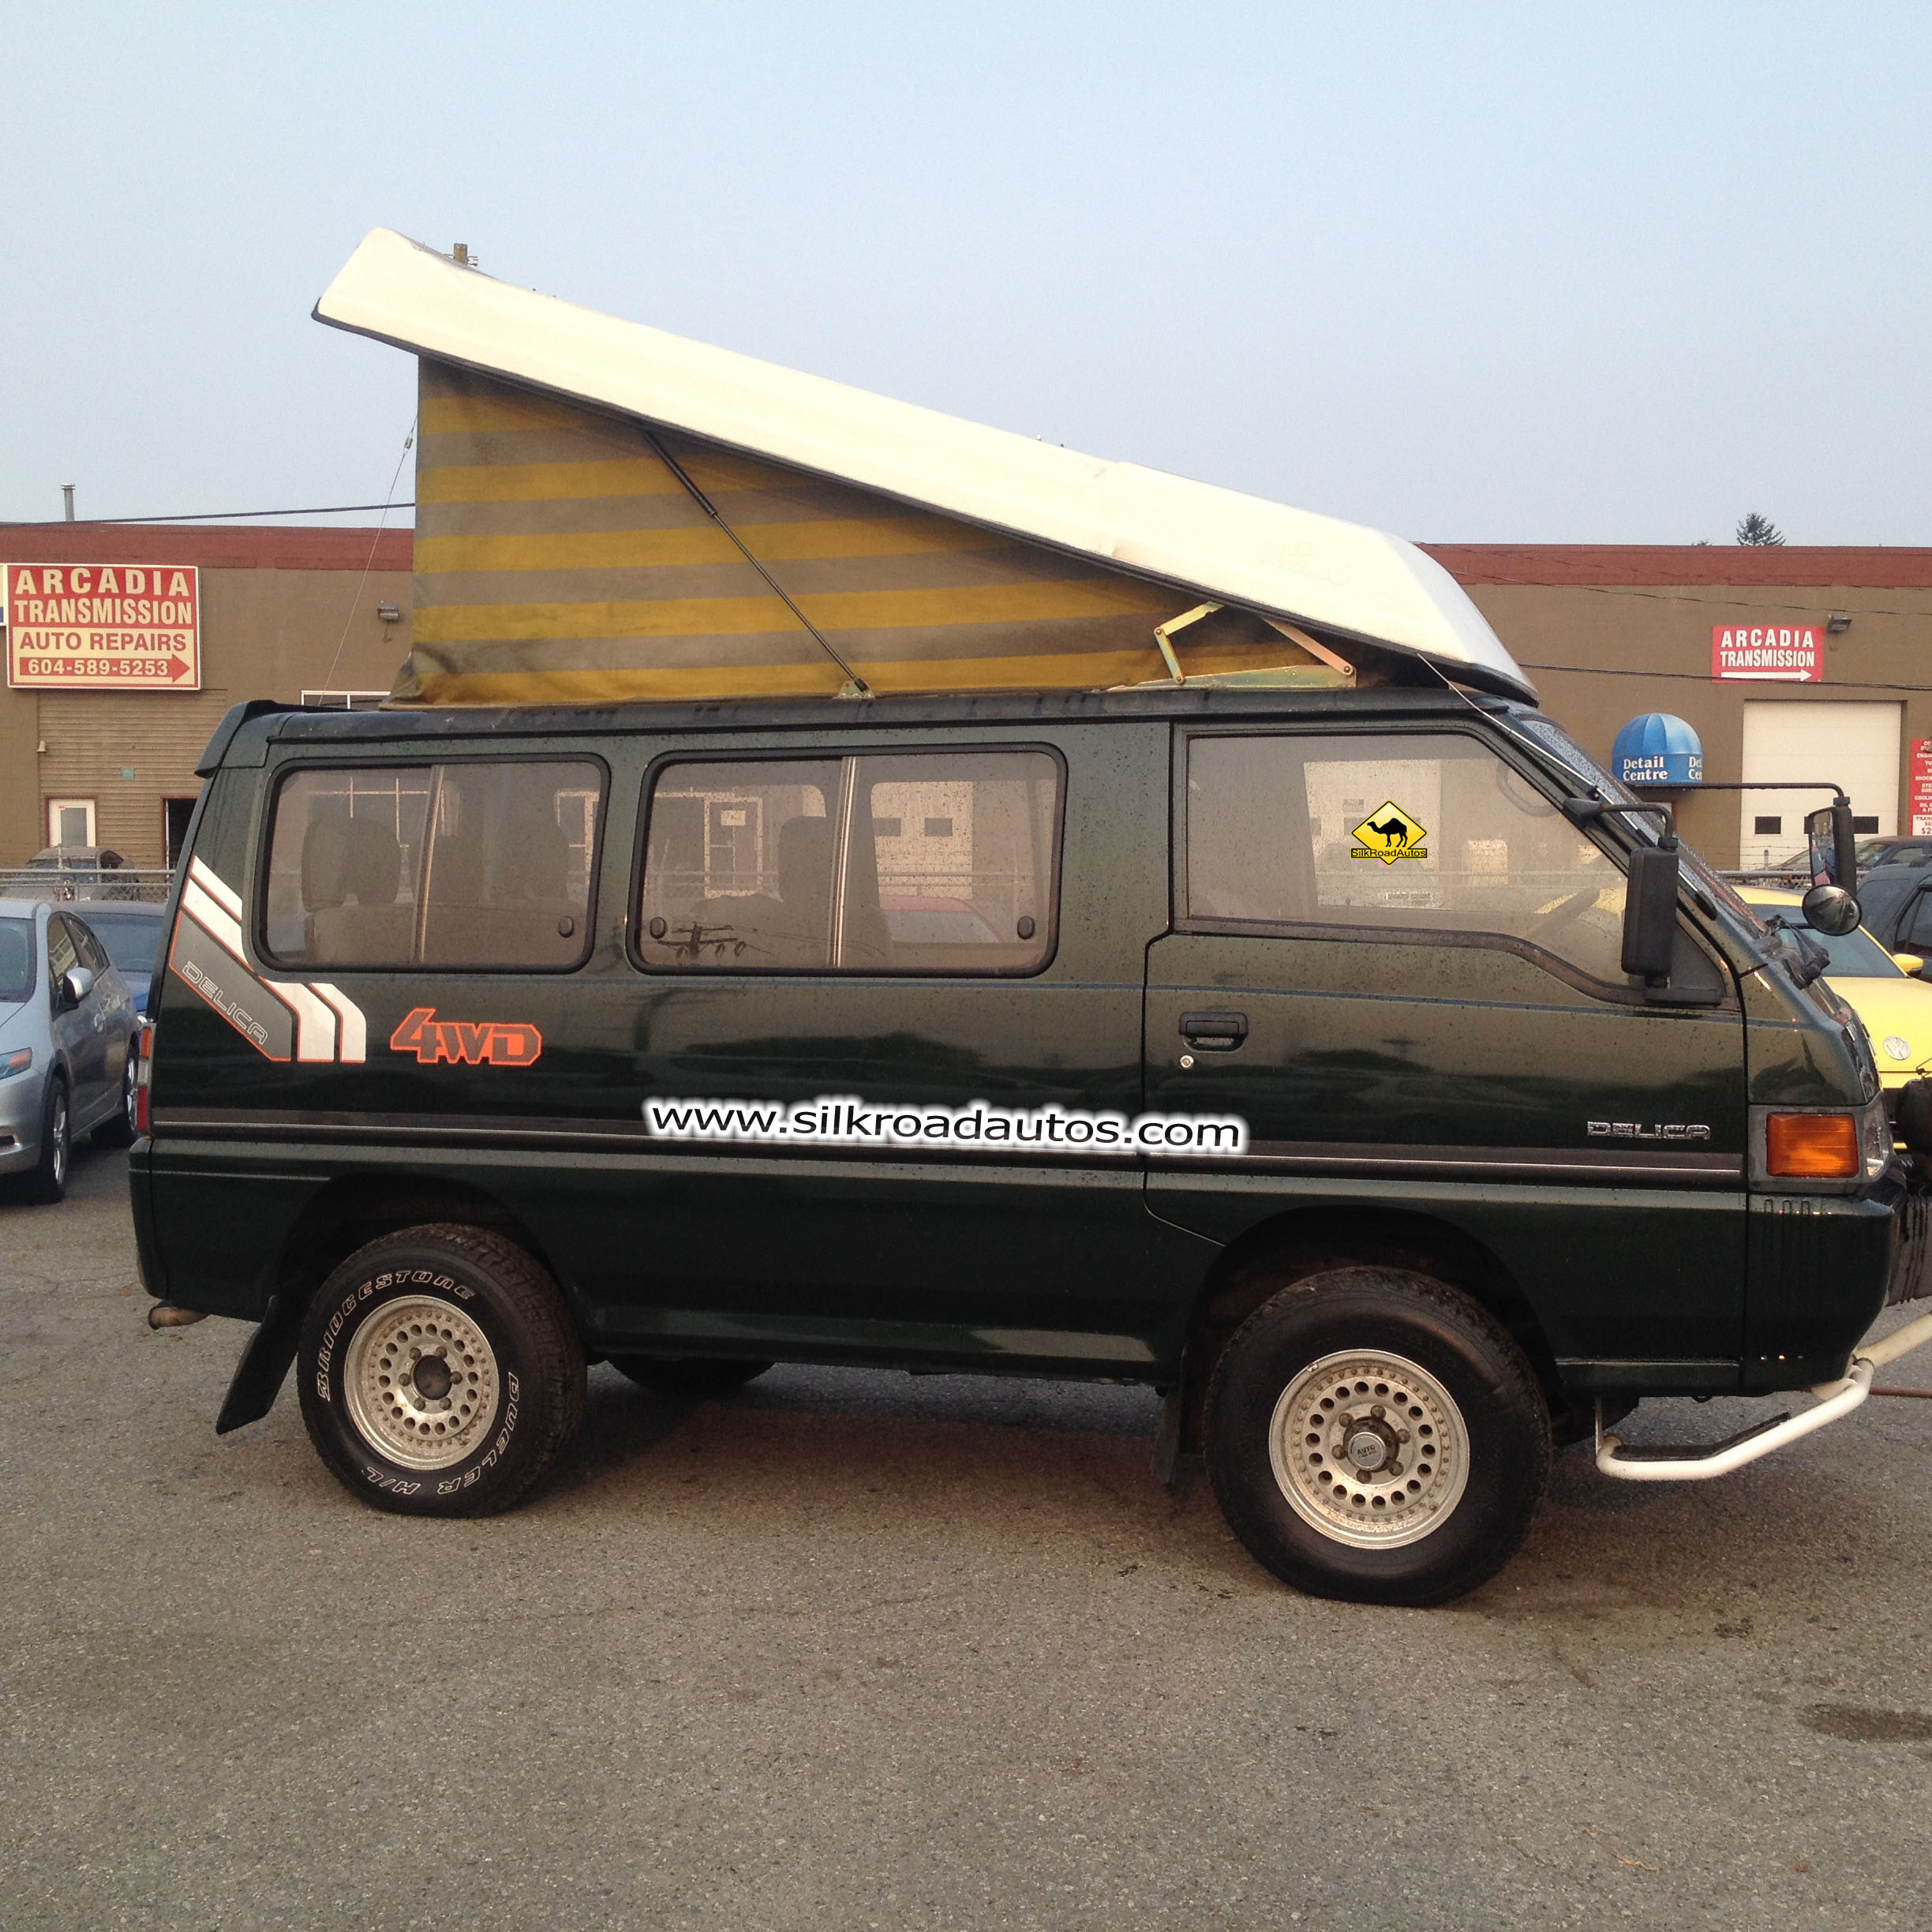 1989 Delica pop